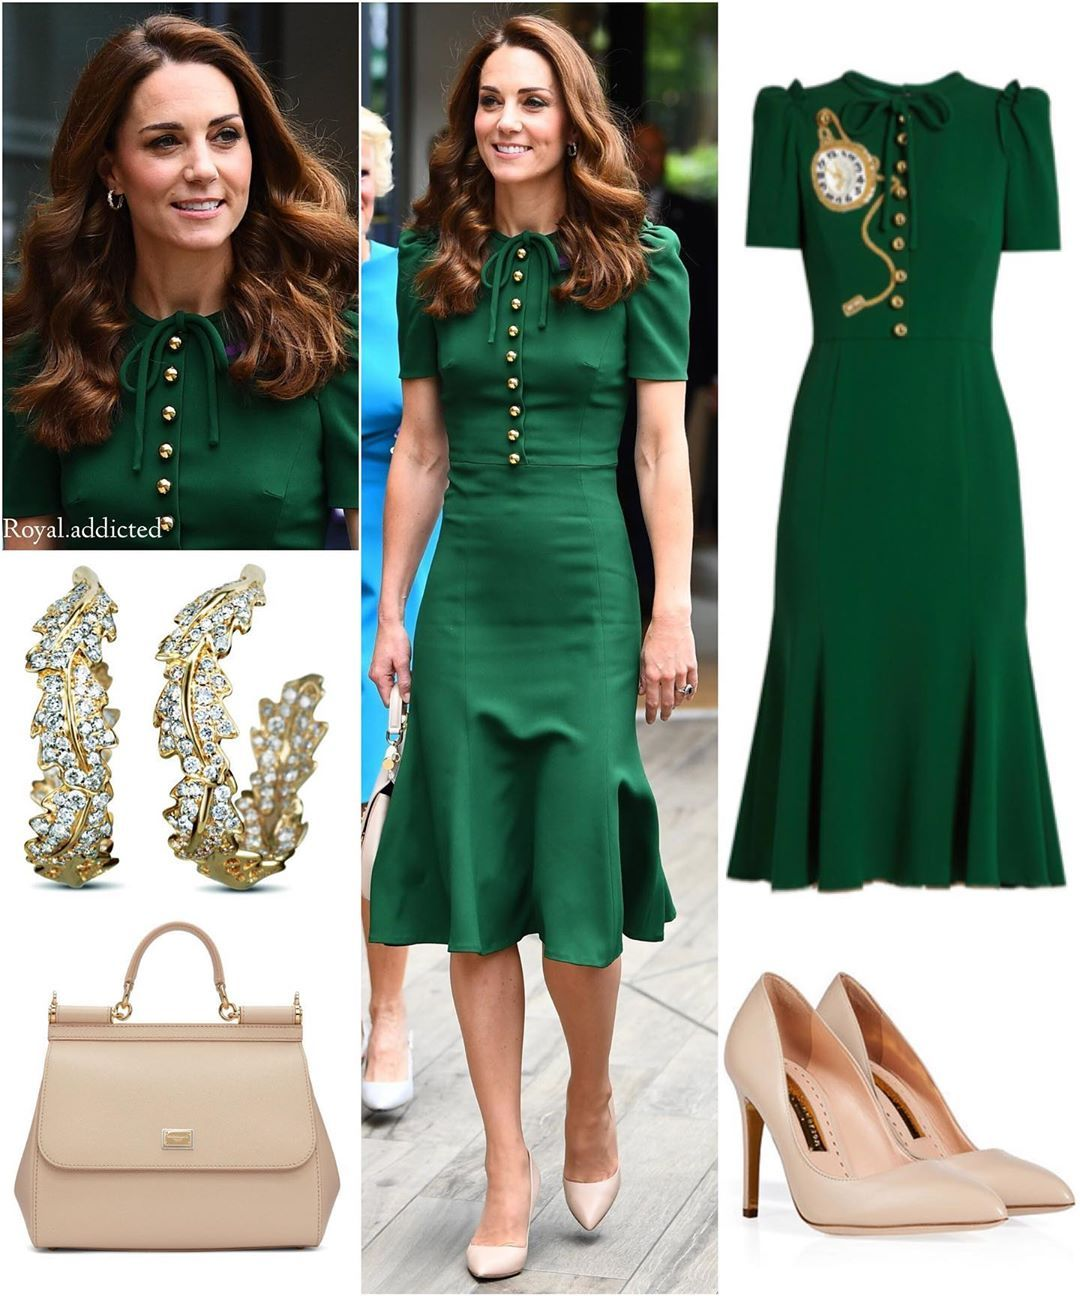 "Photo of Royal Addicted on Instagram: ""Duchess of Cambridge Style! Dress: Dolce & Gabbana (first worn in 2016); Shoes: Rupert Sanderson; Bag: Dolce & Gabbana; Earrings: Asprey…"" – Herzogin Kate"